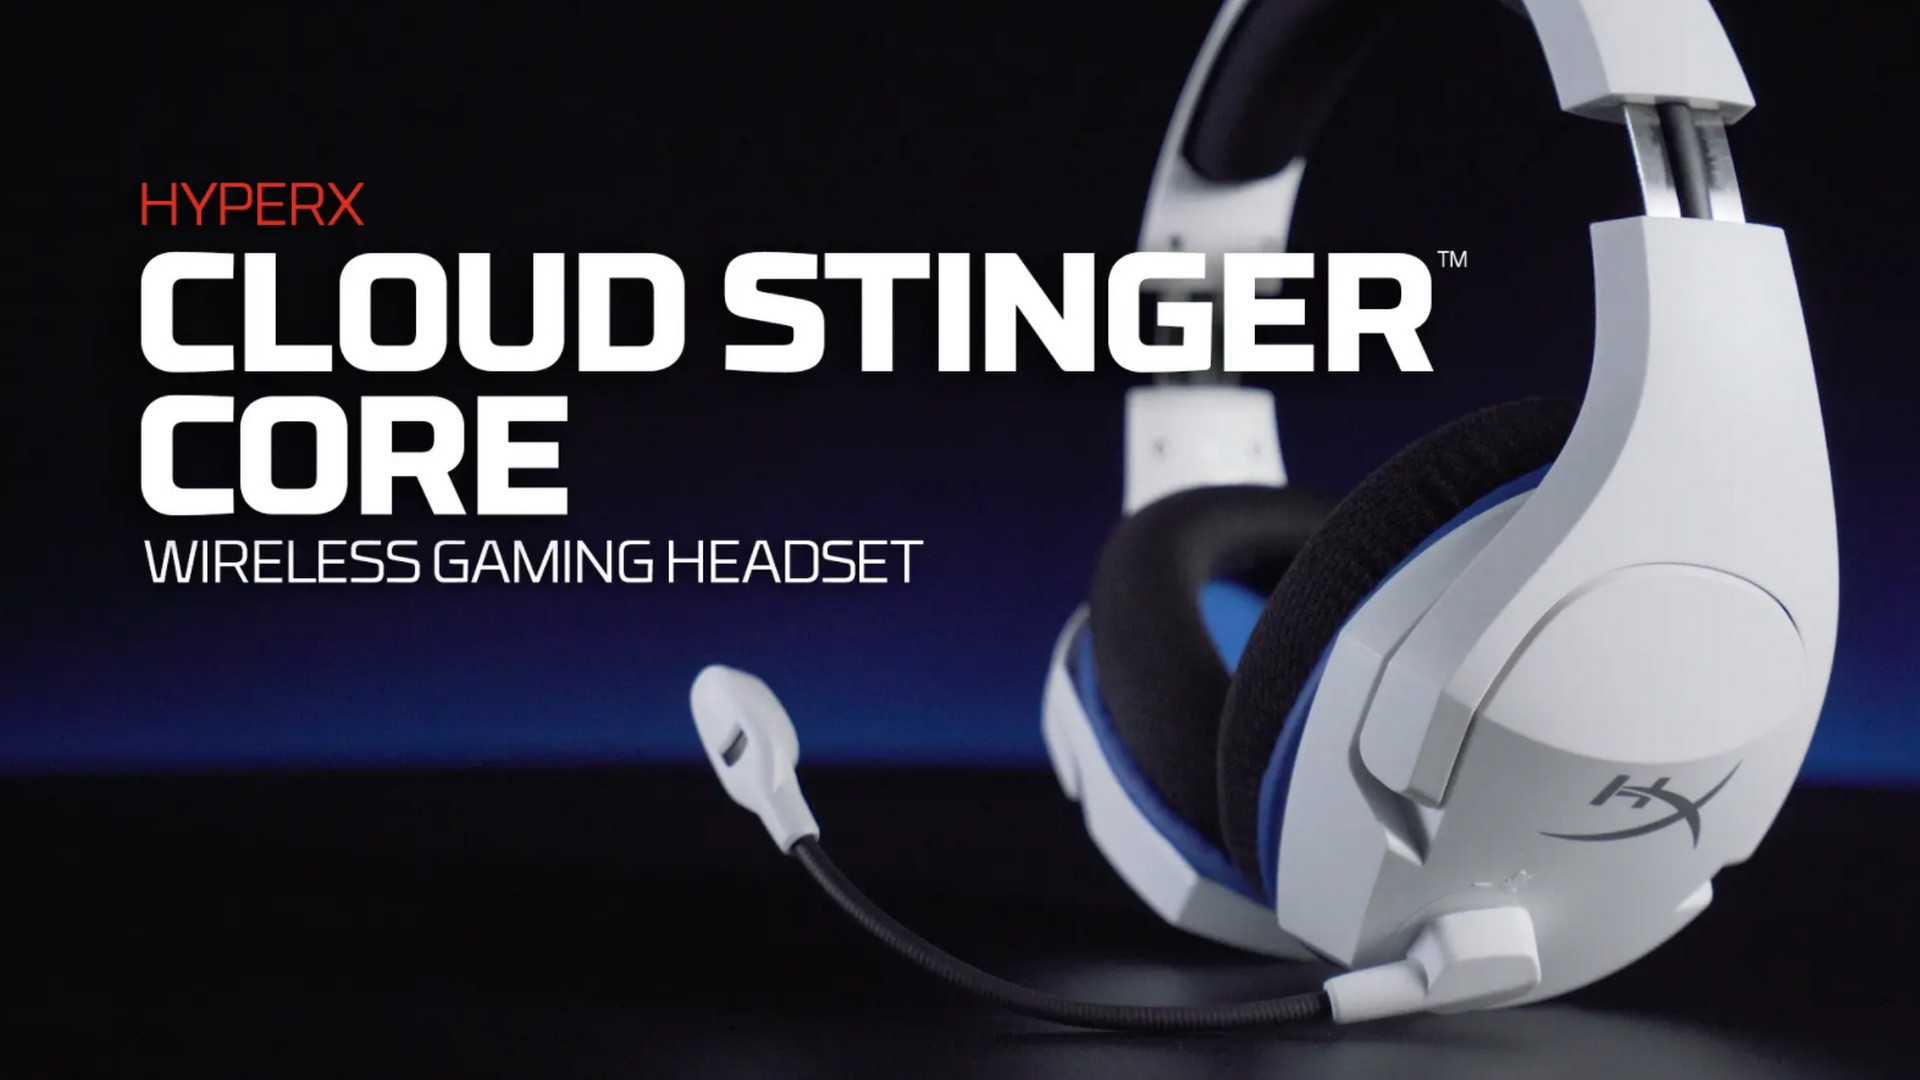 HyperX Releases Cloud Stinger Core Wireless Gaming Headset in Australia